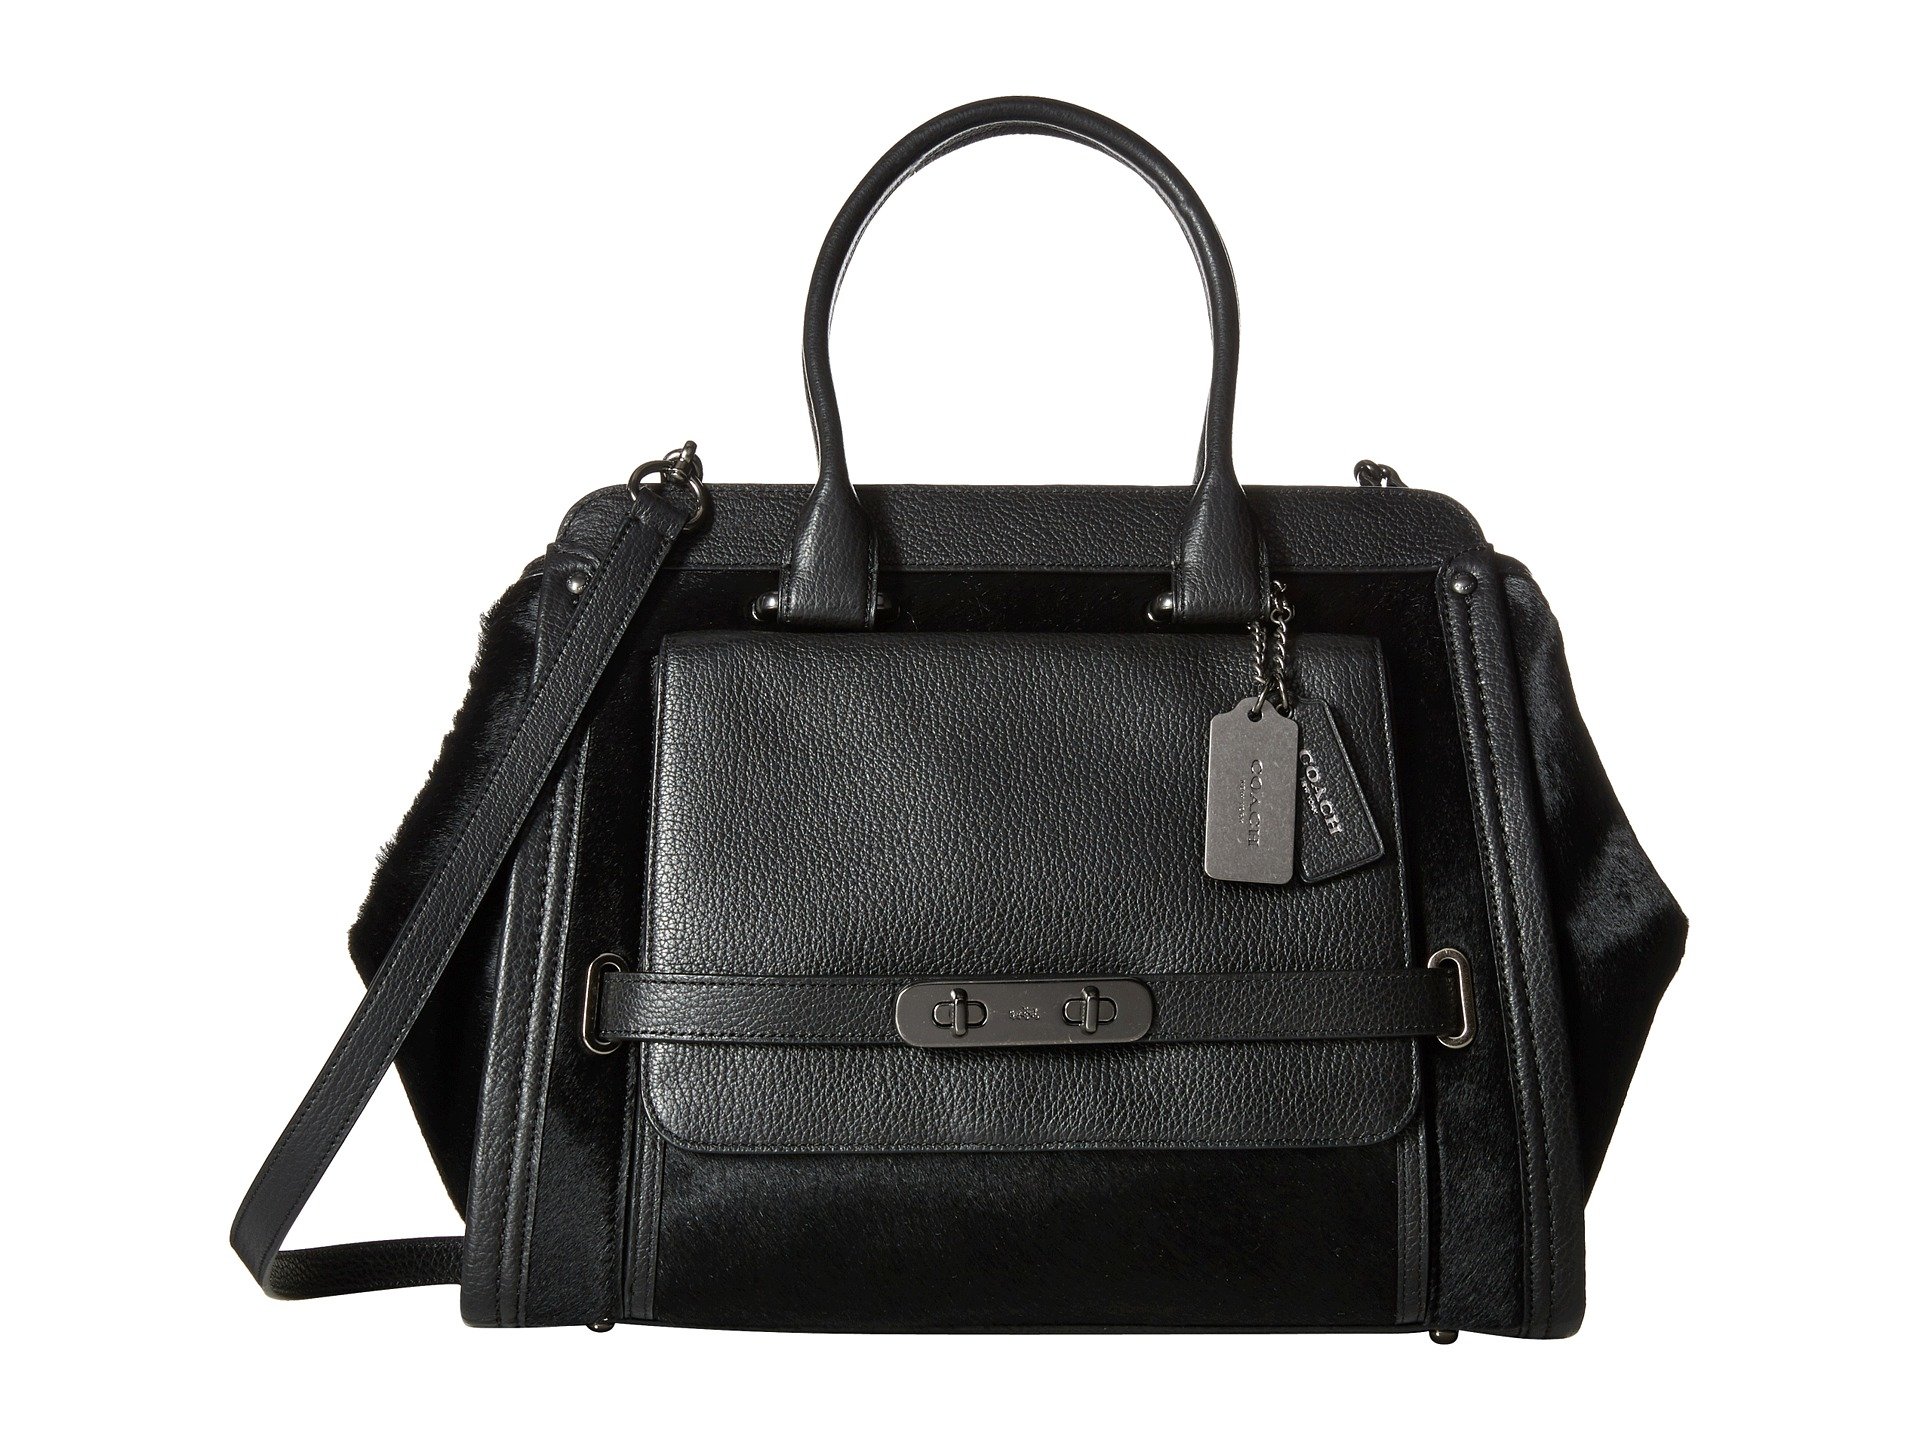 Lyst - Coach Haircalf Swagger Frame Satchel in Black